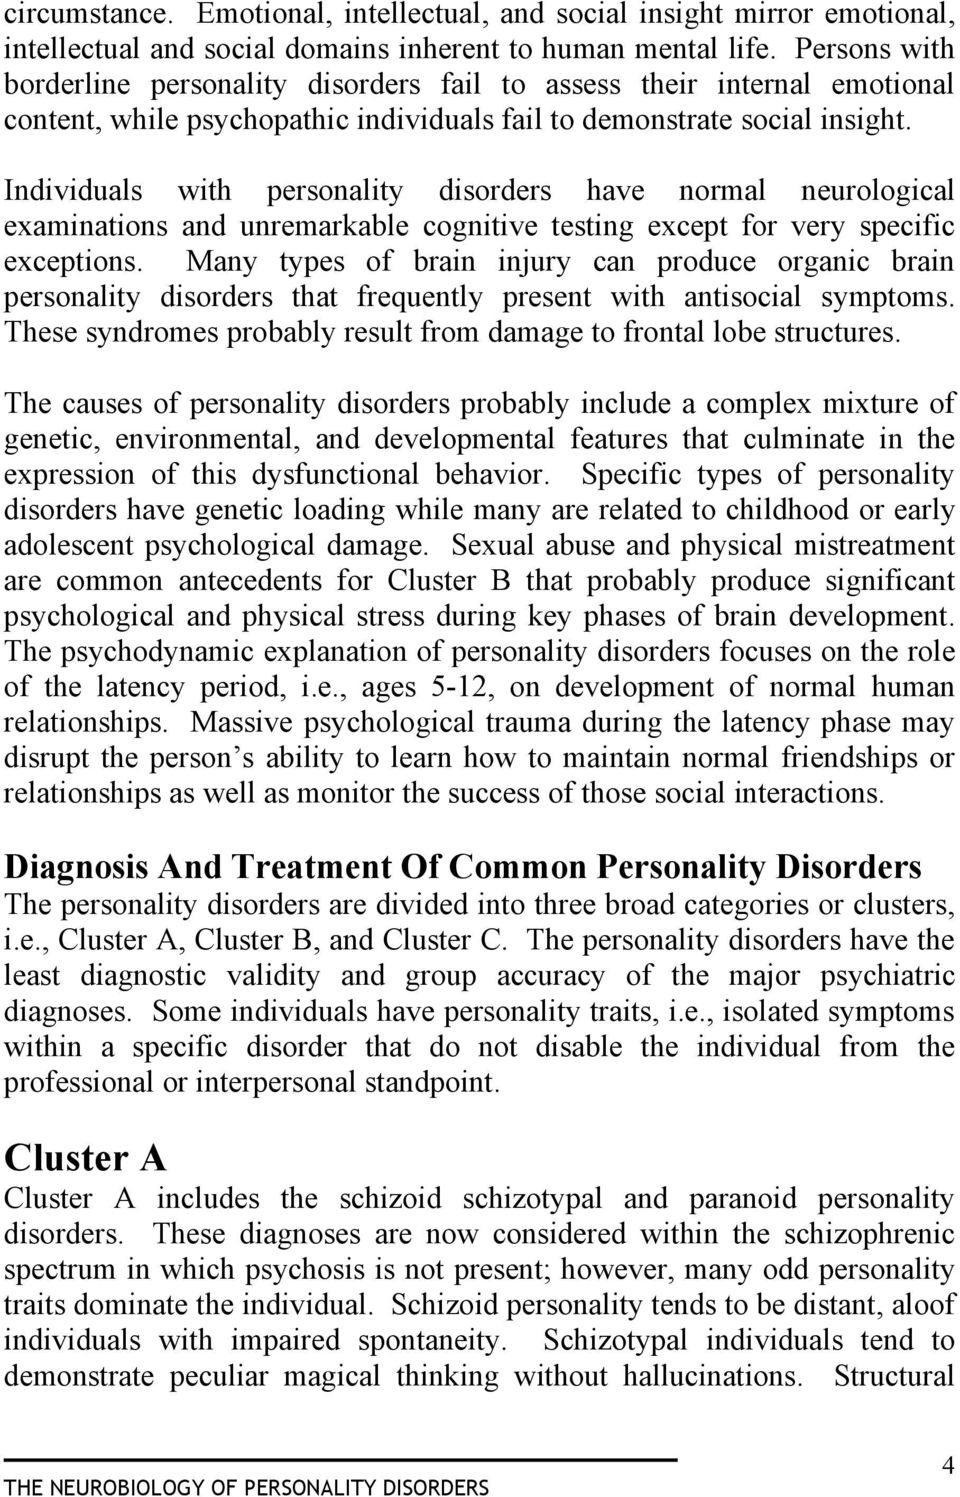 Individuals with personality disorders have normal neurological examinations and unremarkable cognitive testing except for very specific exceptions.